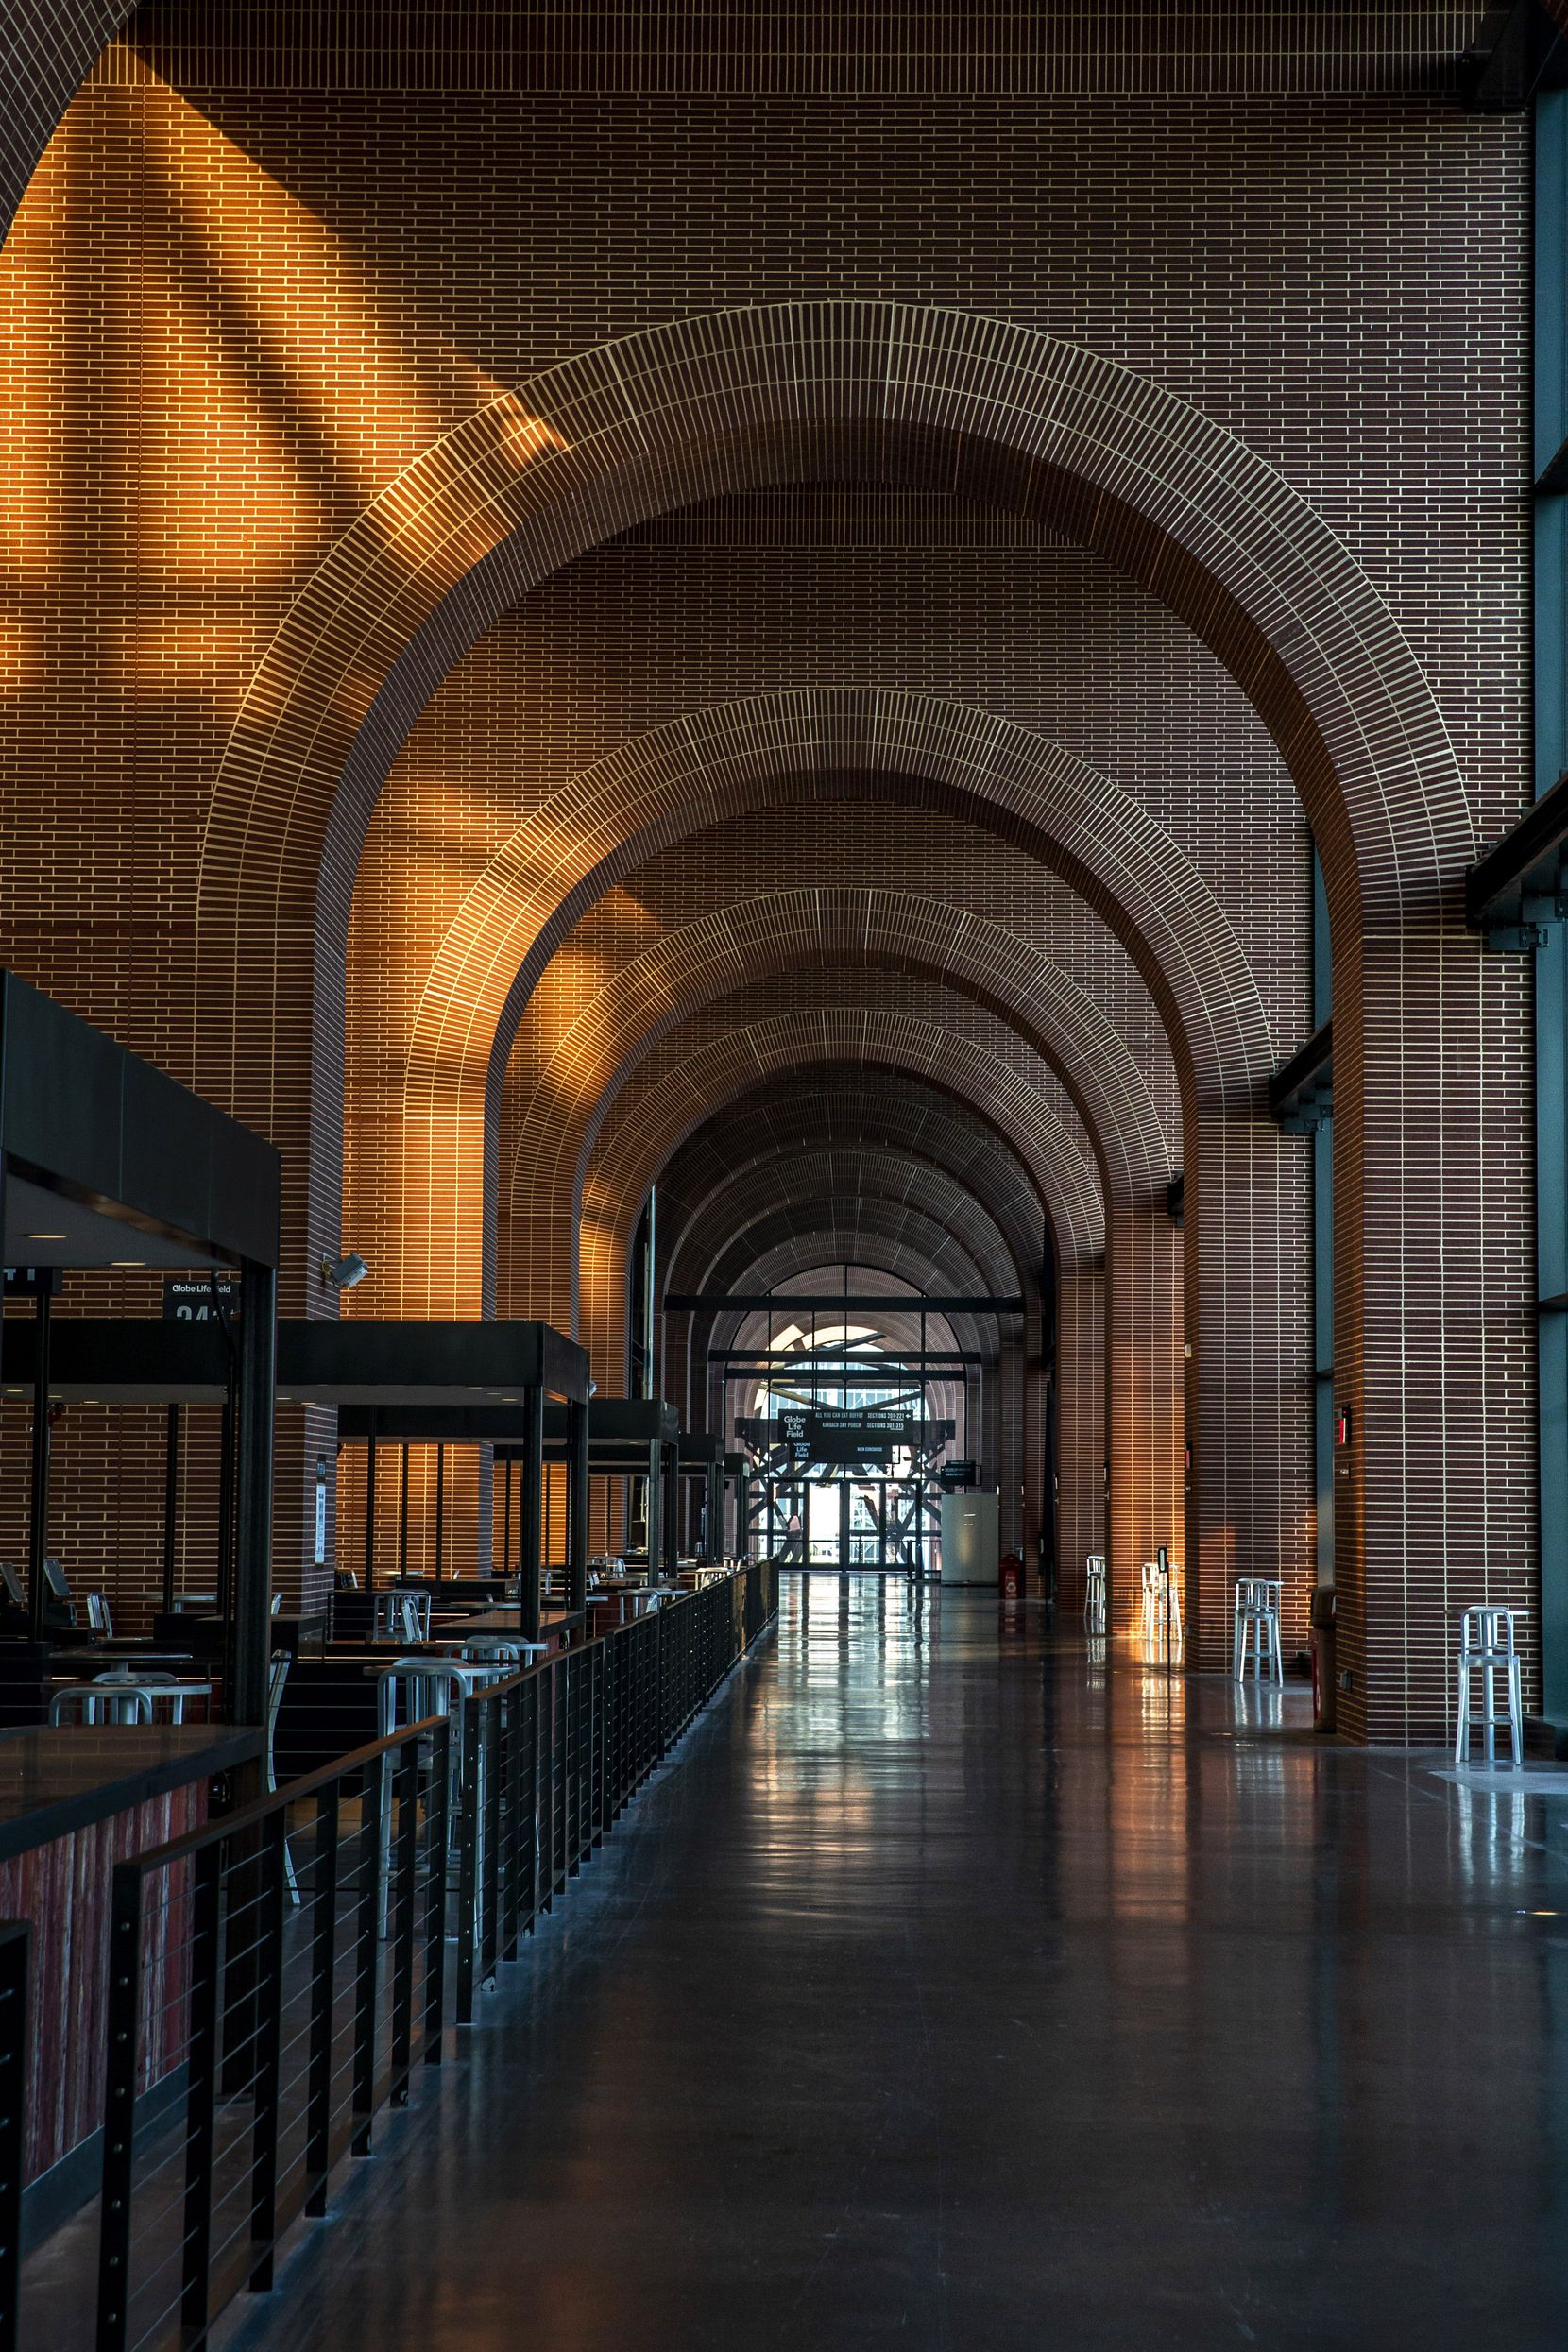 A defining architectural feature of the ballpark is its towering, glass-enclosed arcade of red brick arches.